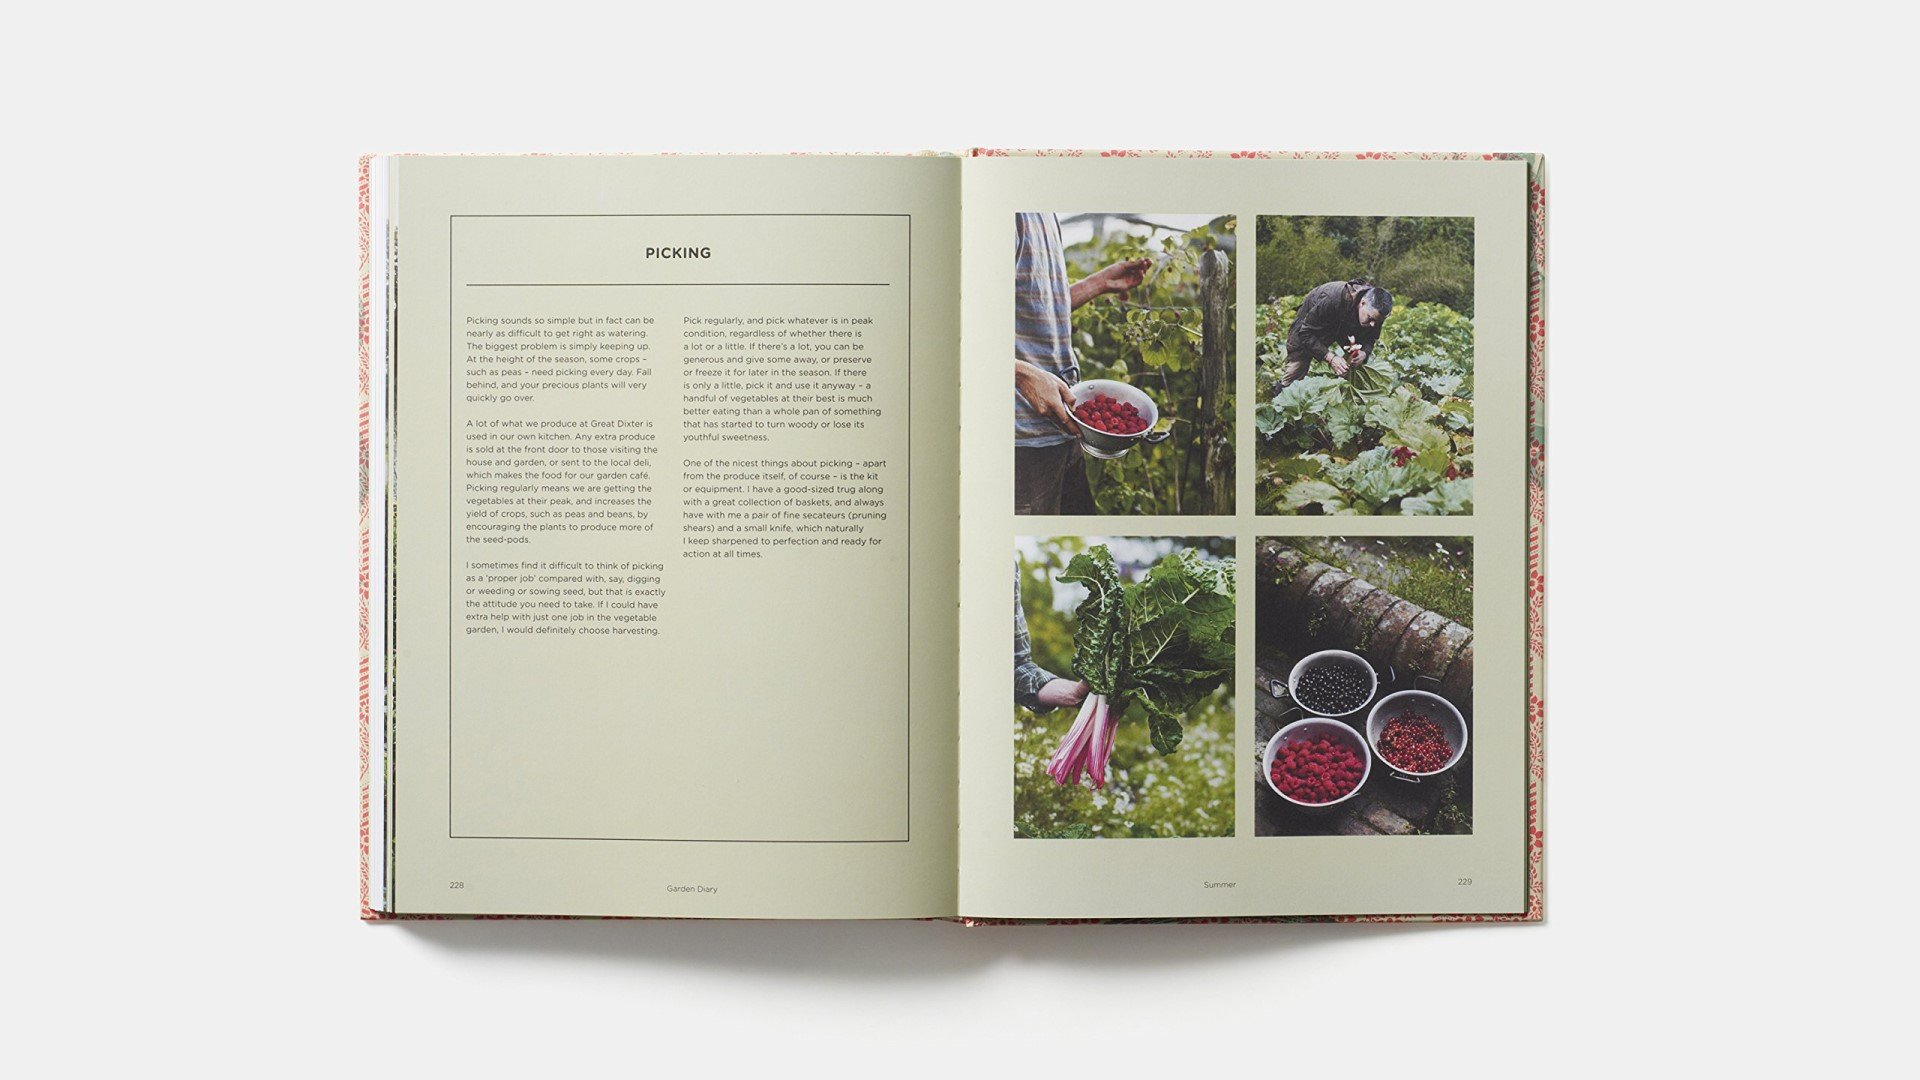 The Great Dixter Cookbook: Recipes from an English Garden. Image Gallery 03